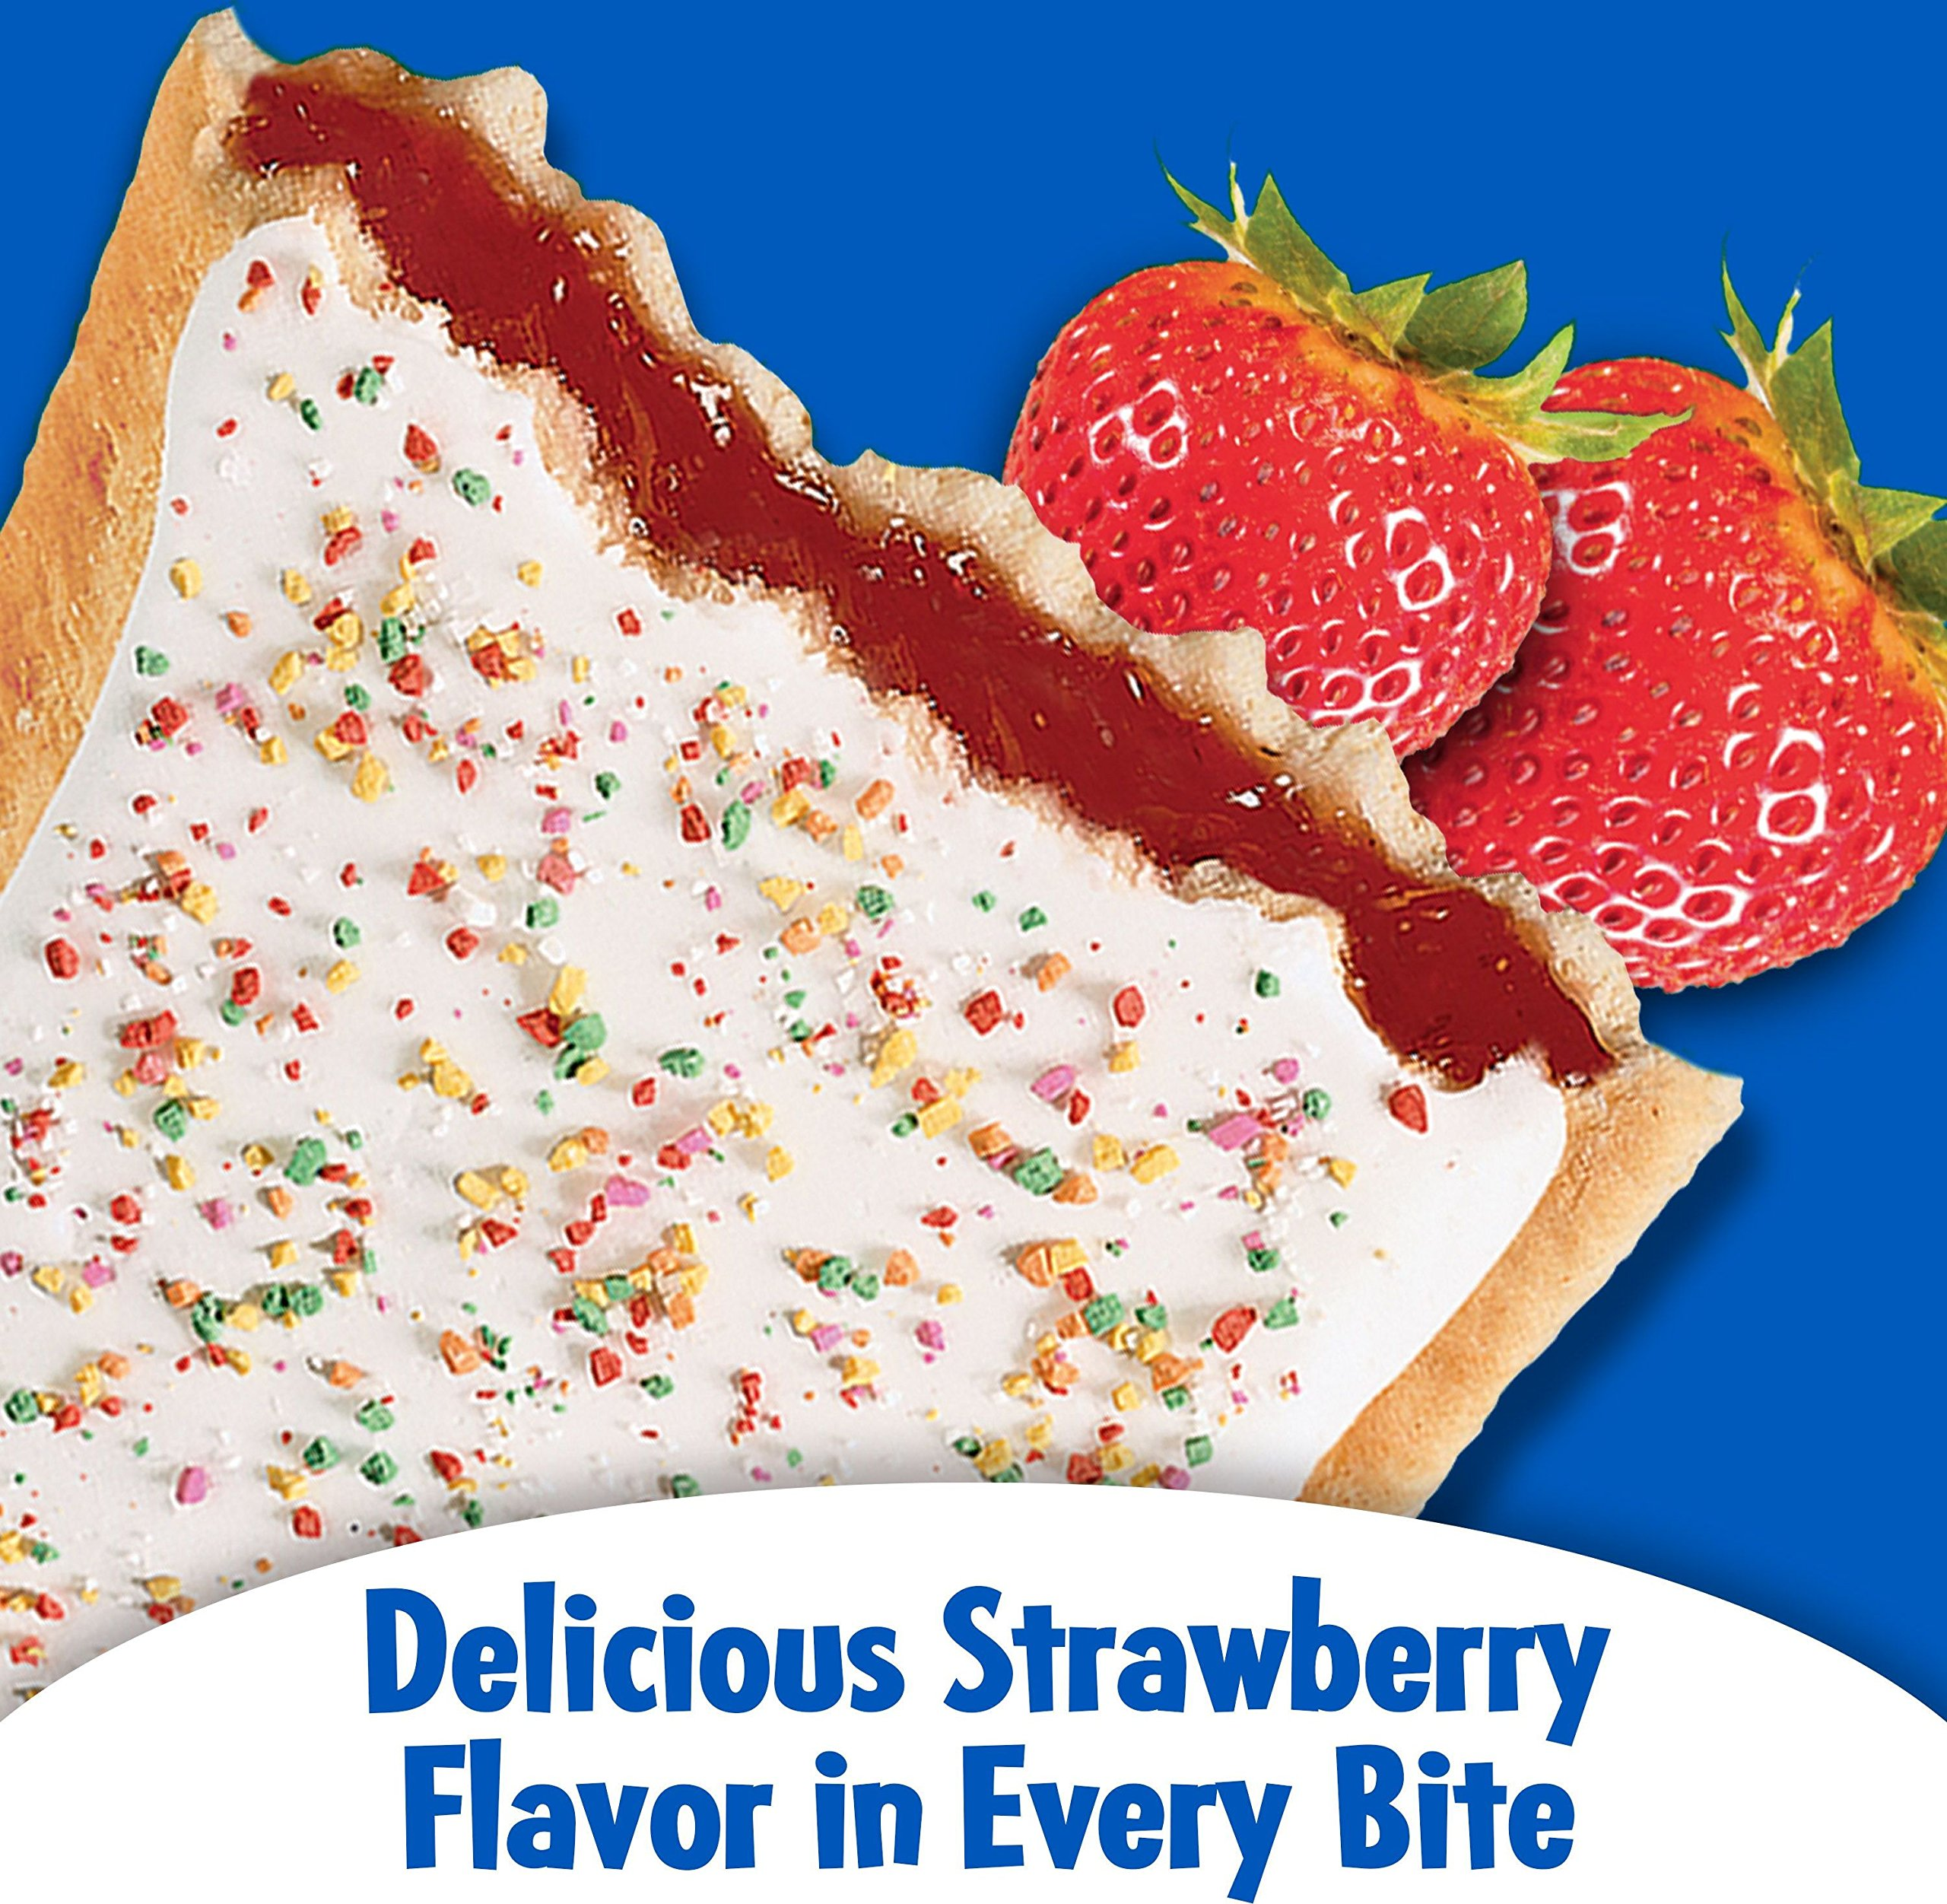 Pop-Tarts BreakfastToaster Pastries, Frosted Strawberry Flavored, Family Pack, 58.6 oz (32 Count)